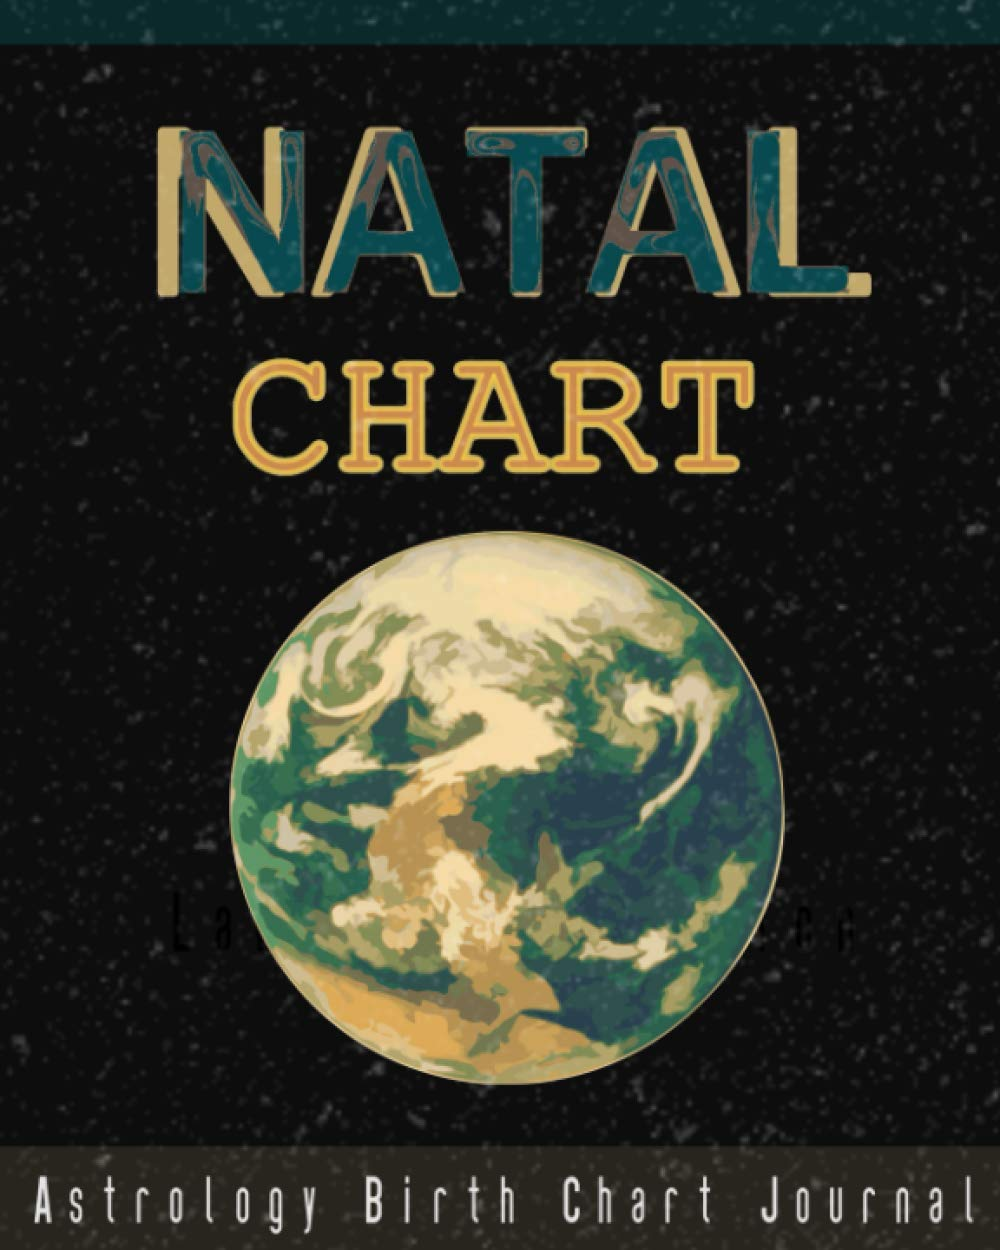 Astrology natal chart Birth chart Journal 20x20 Tables with empty ...